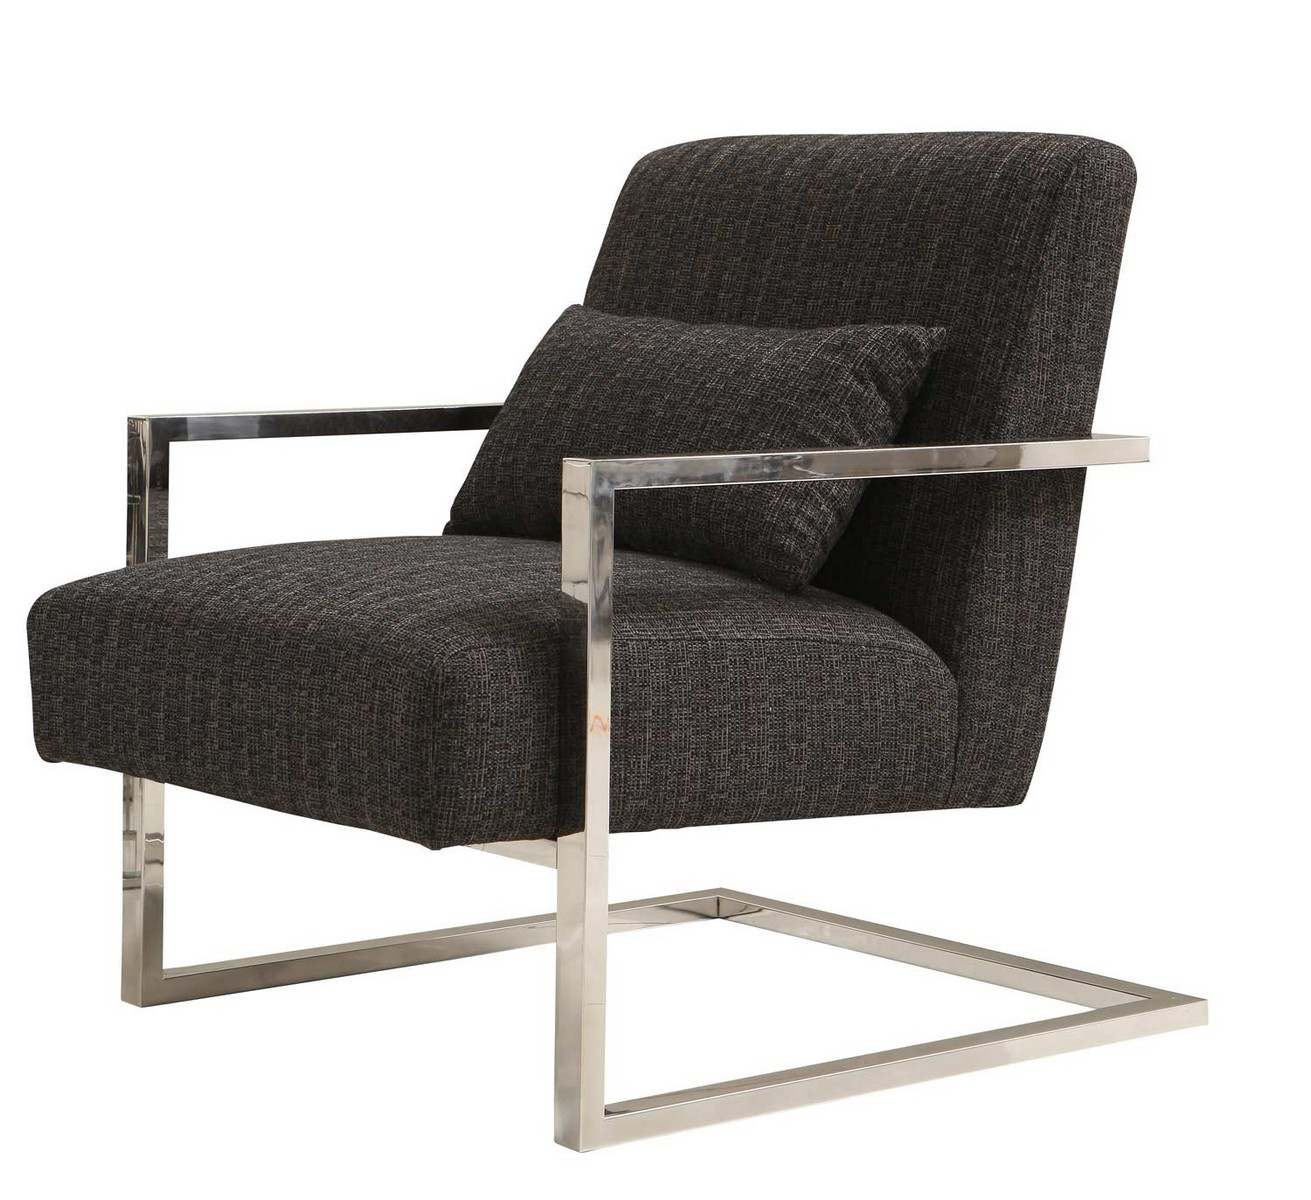 Armen Living Skyline Accent Chair - Charcoal